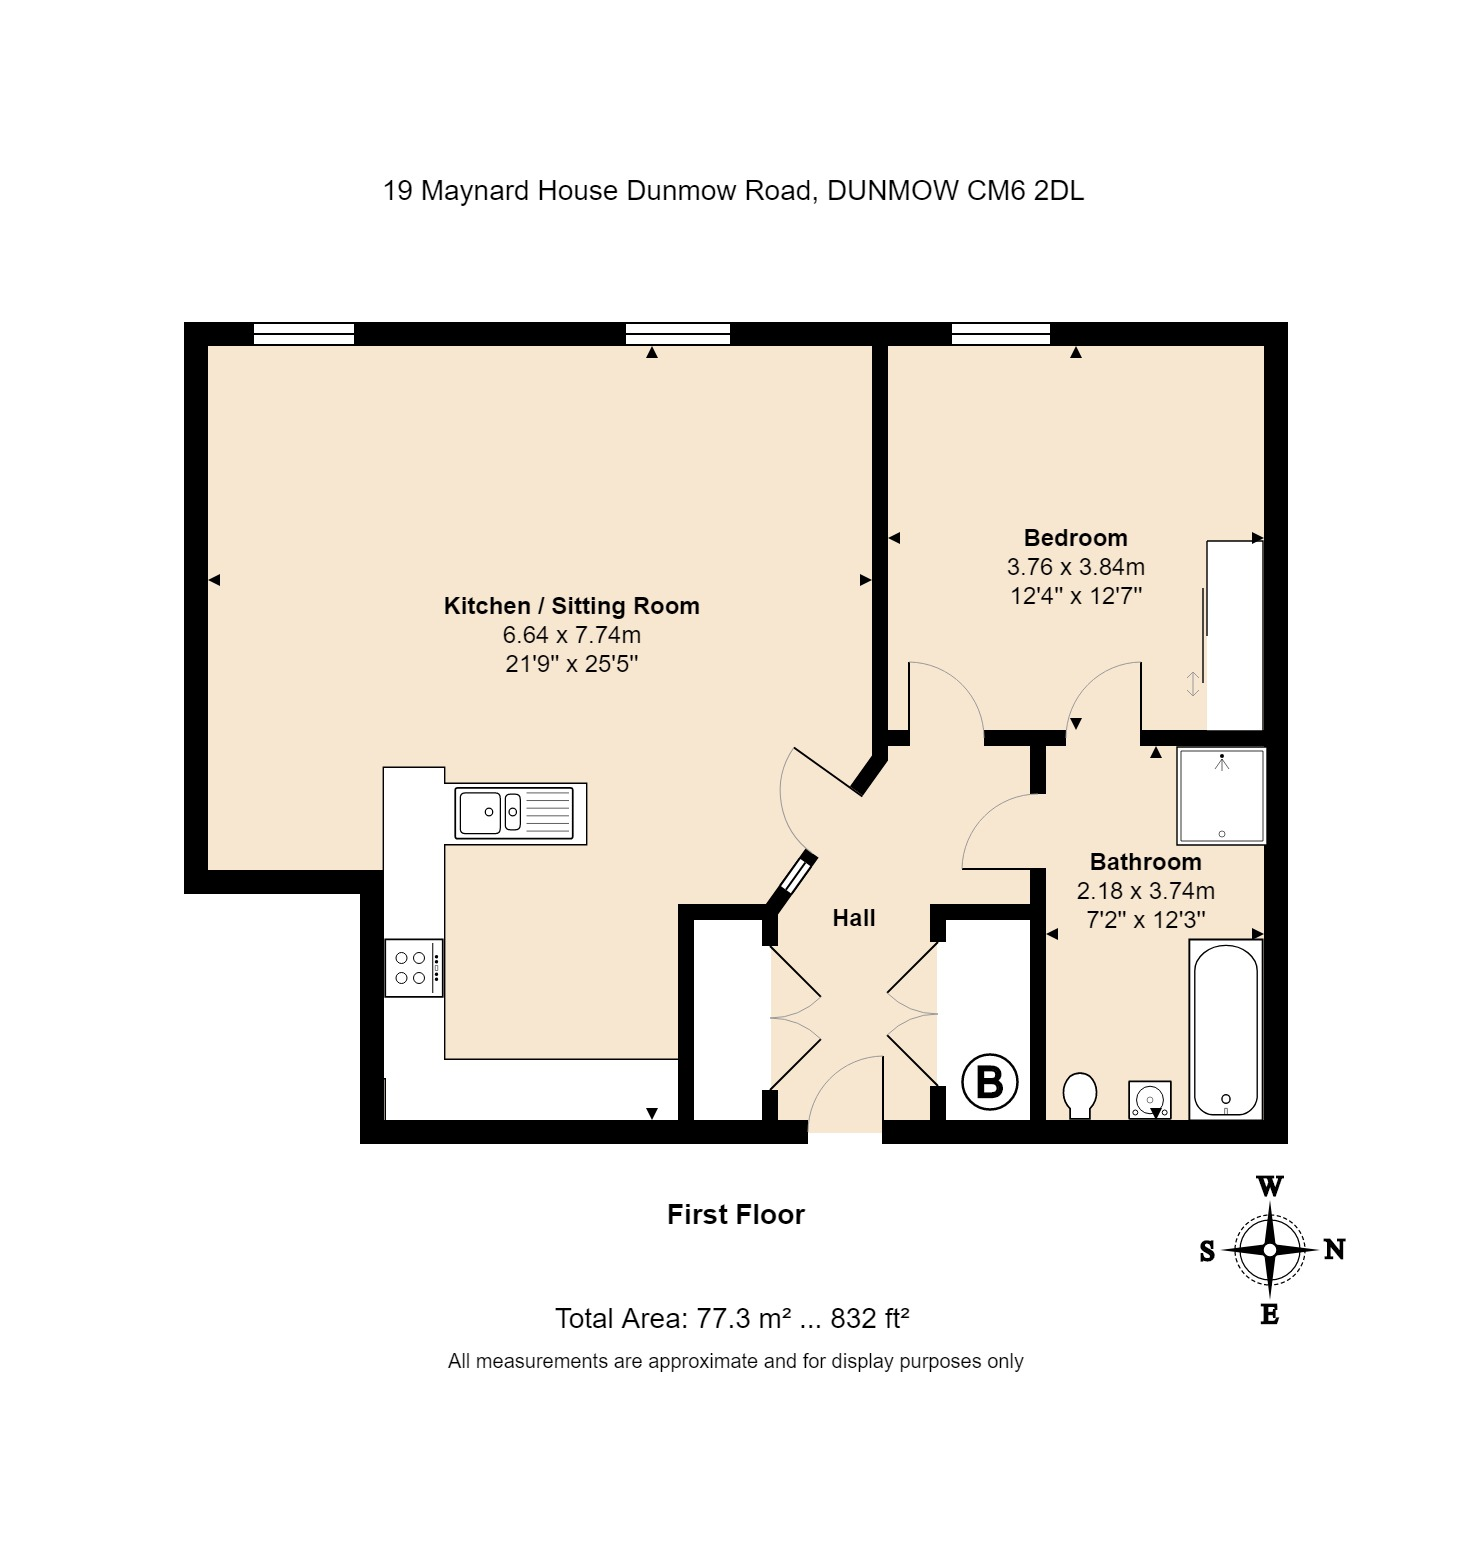 19 Maynard House Floorplan